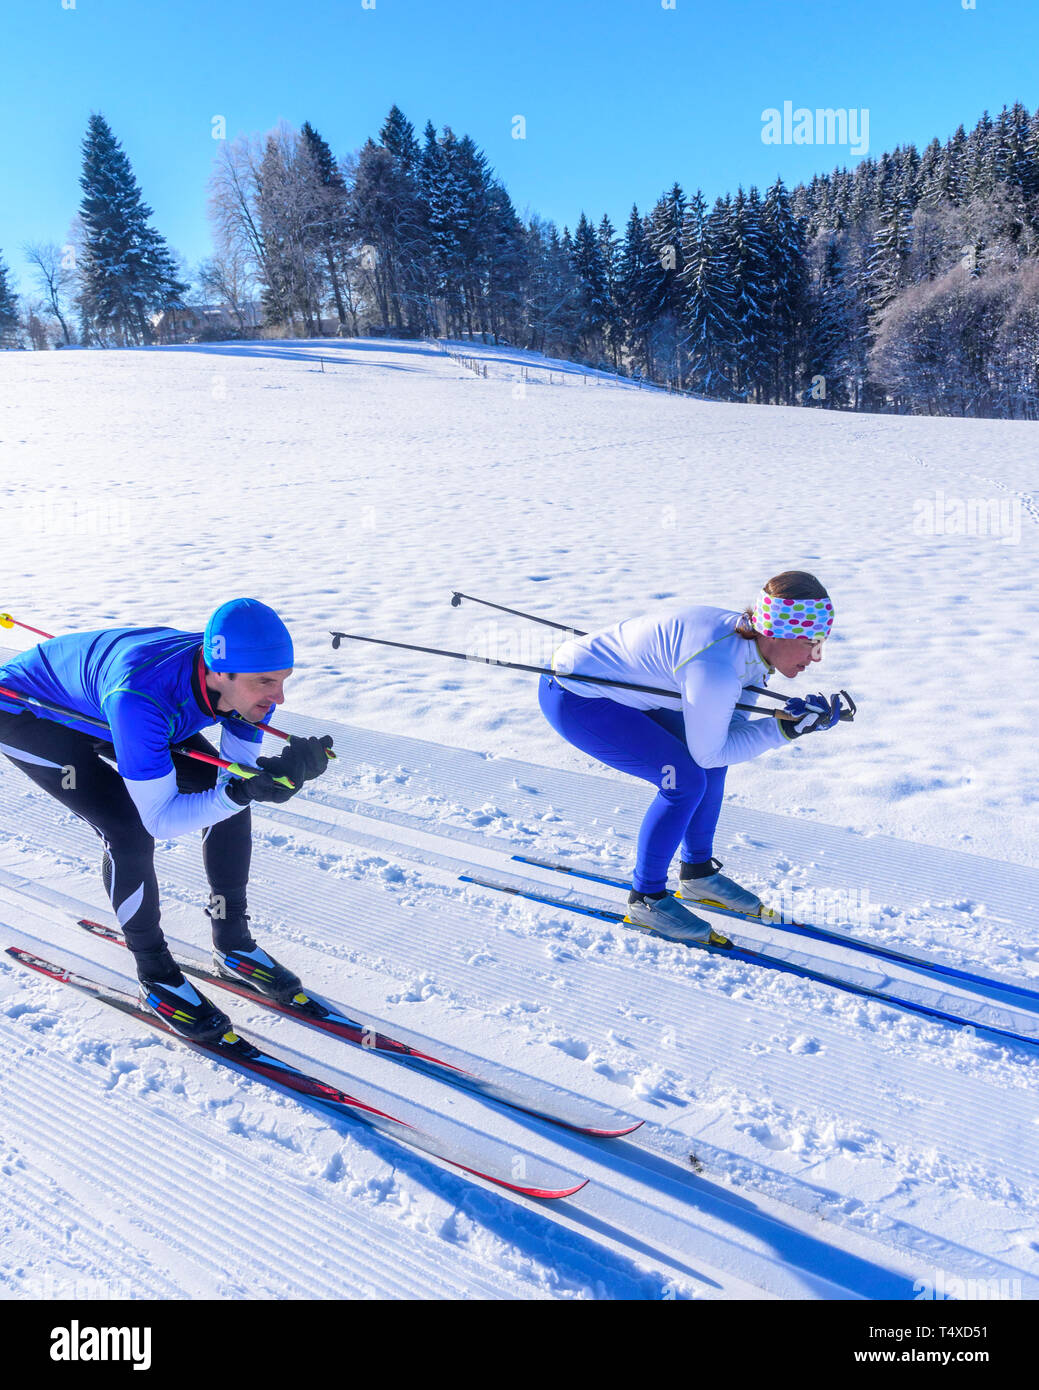 Cross-country skiiers in downhill position - Stock Image